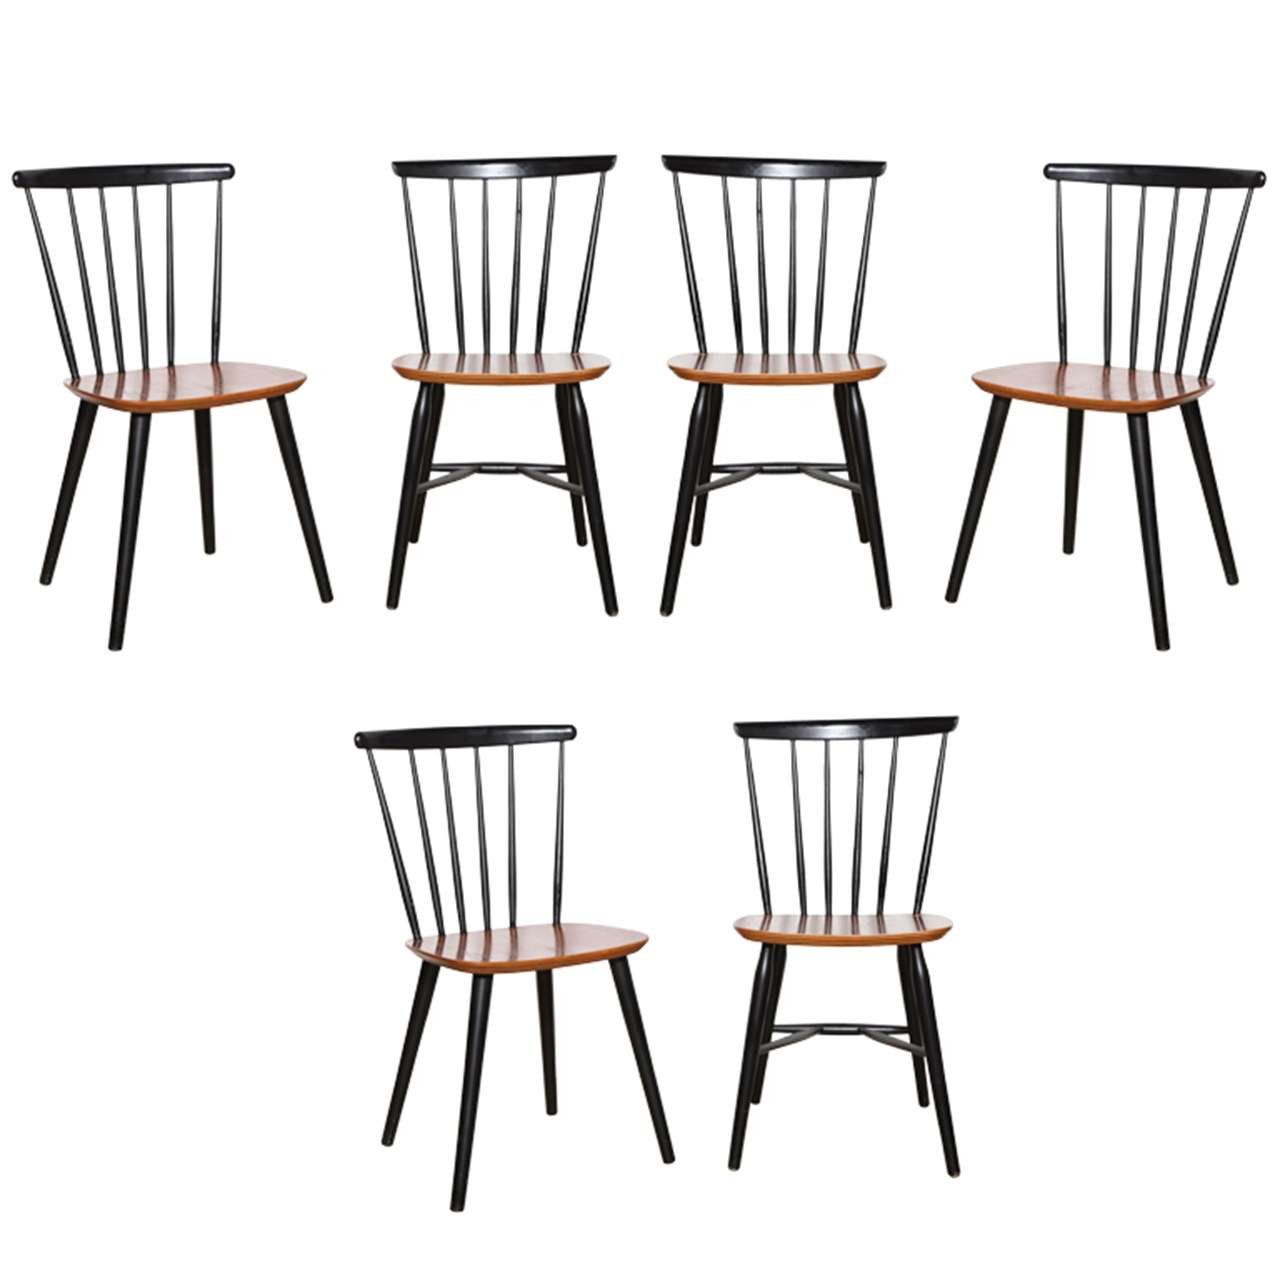 6 Farstrup Teak And Black Lacquer Chairs At 1stdibs